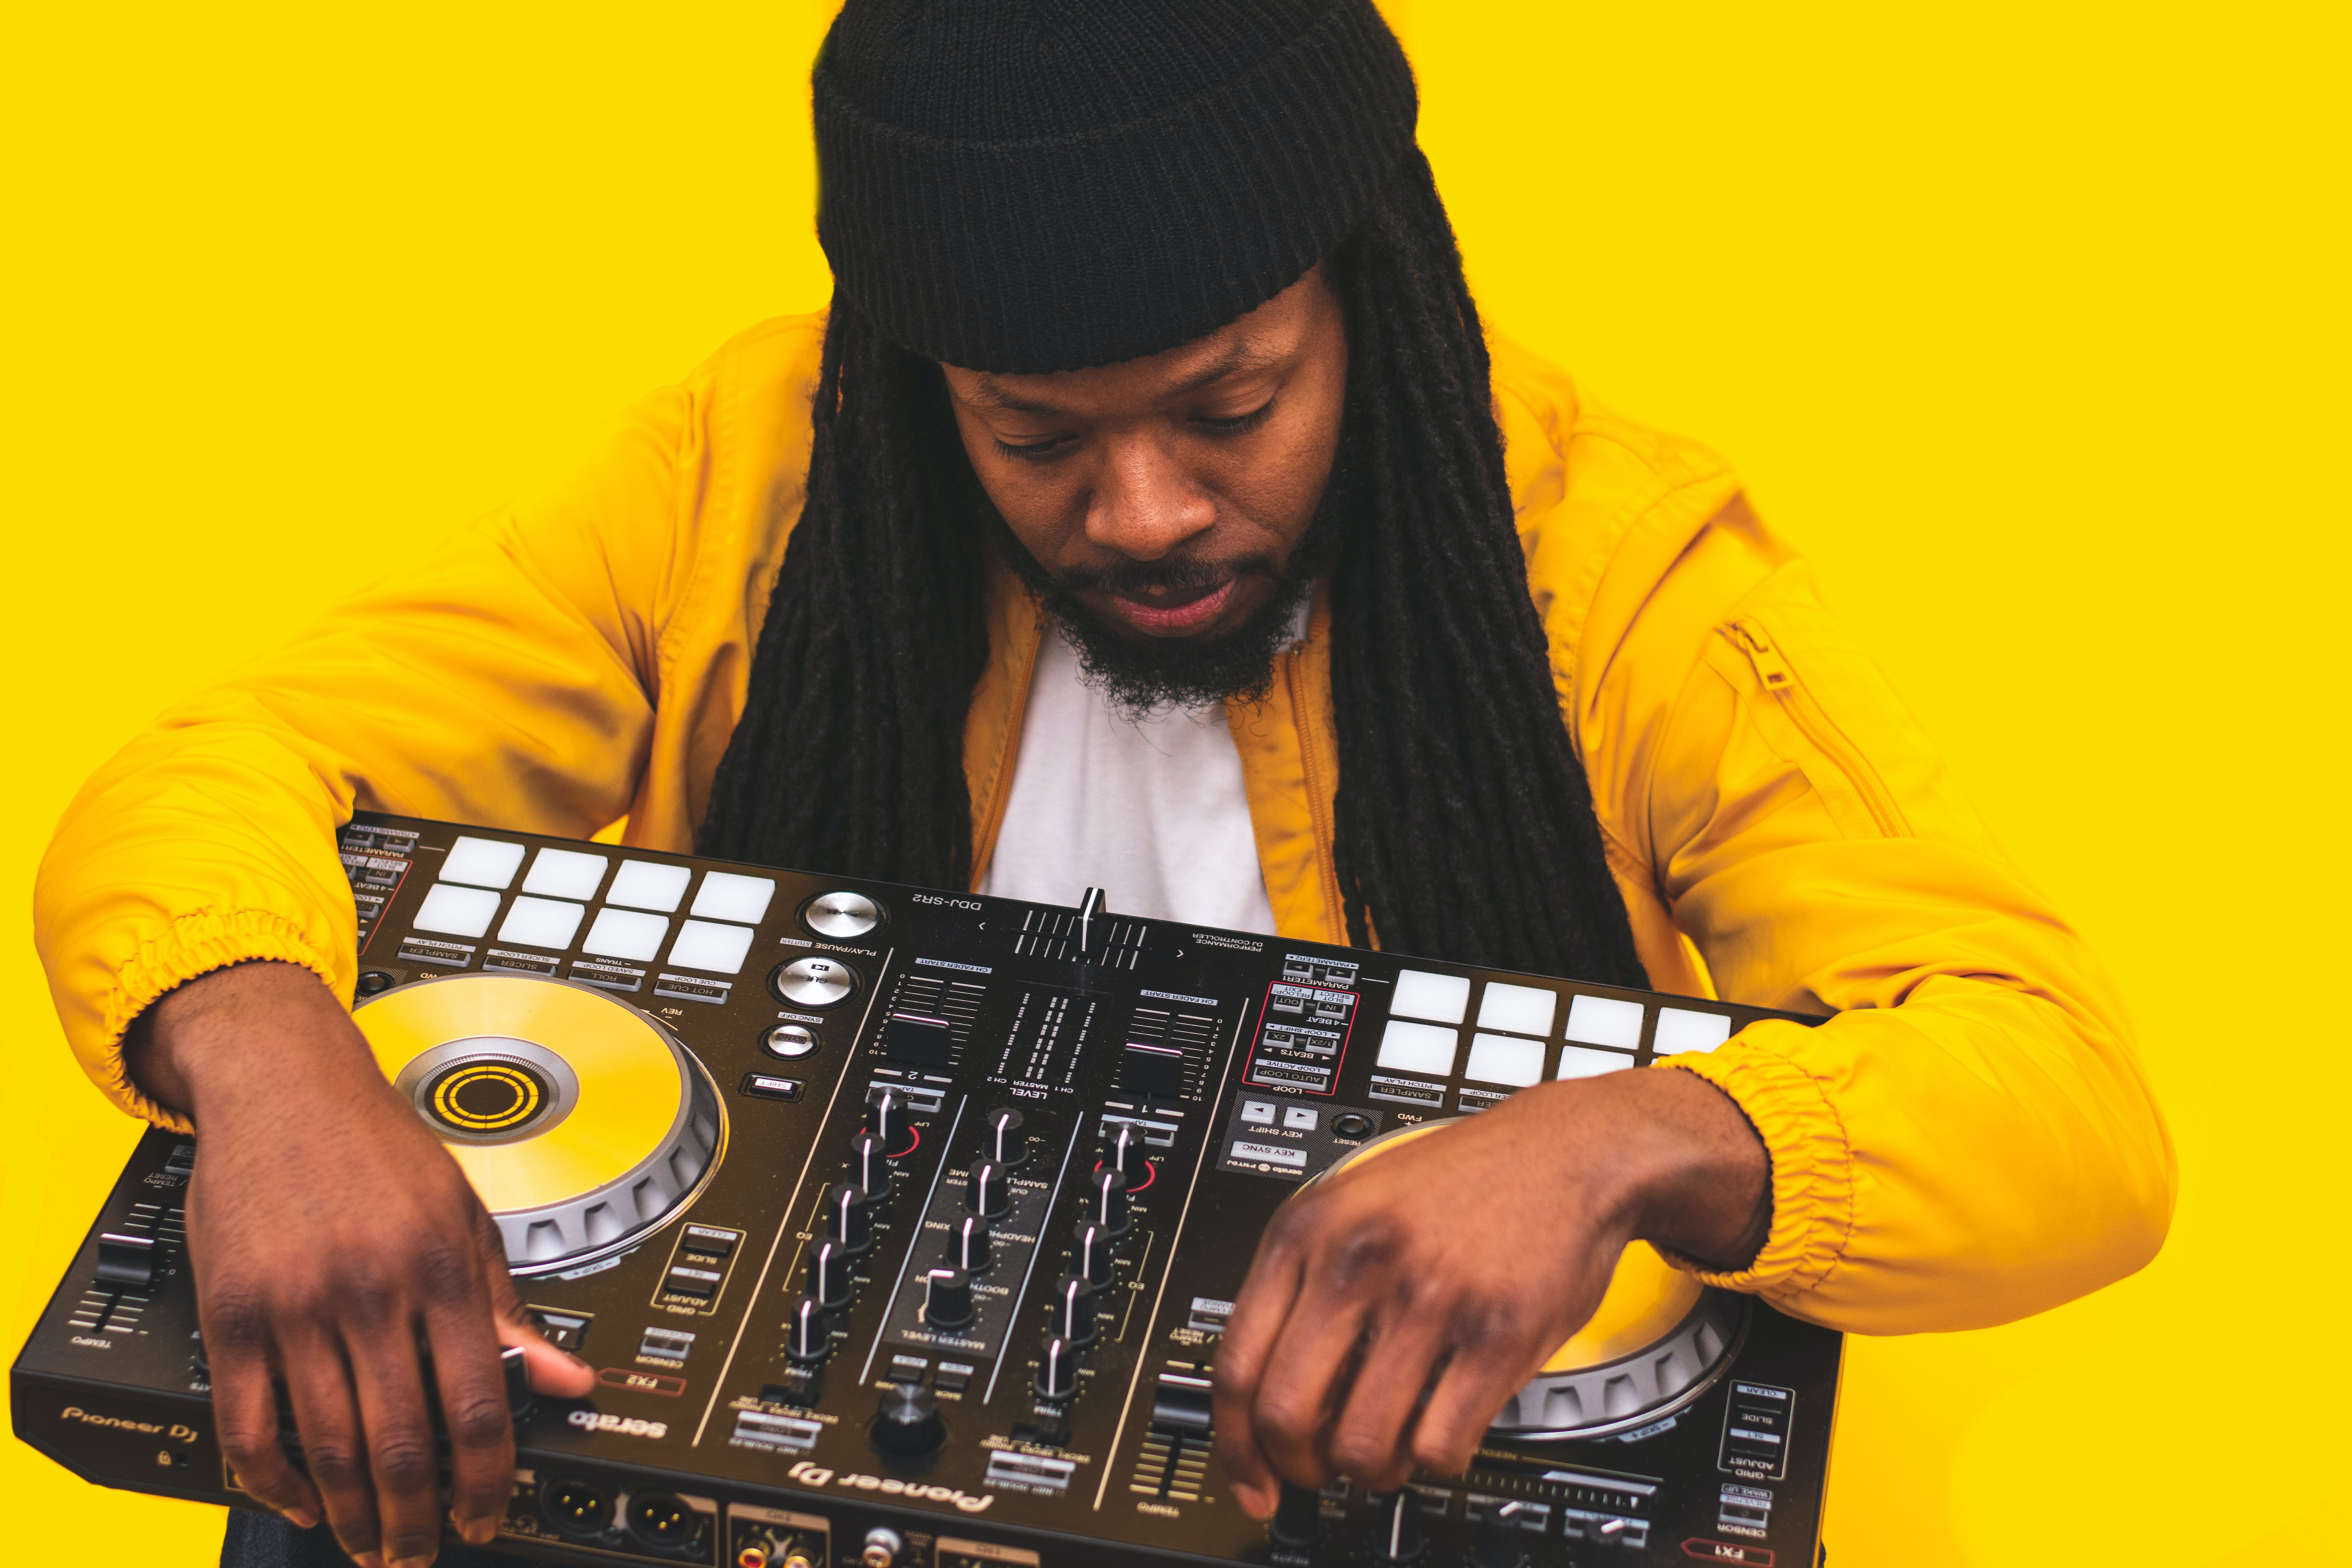 Man Holding Dj Controller on Yellow Background